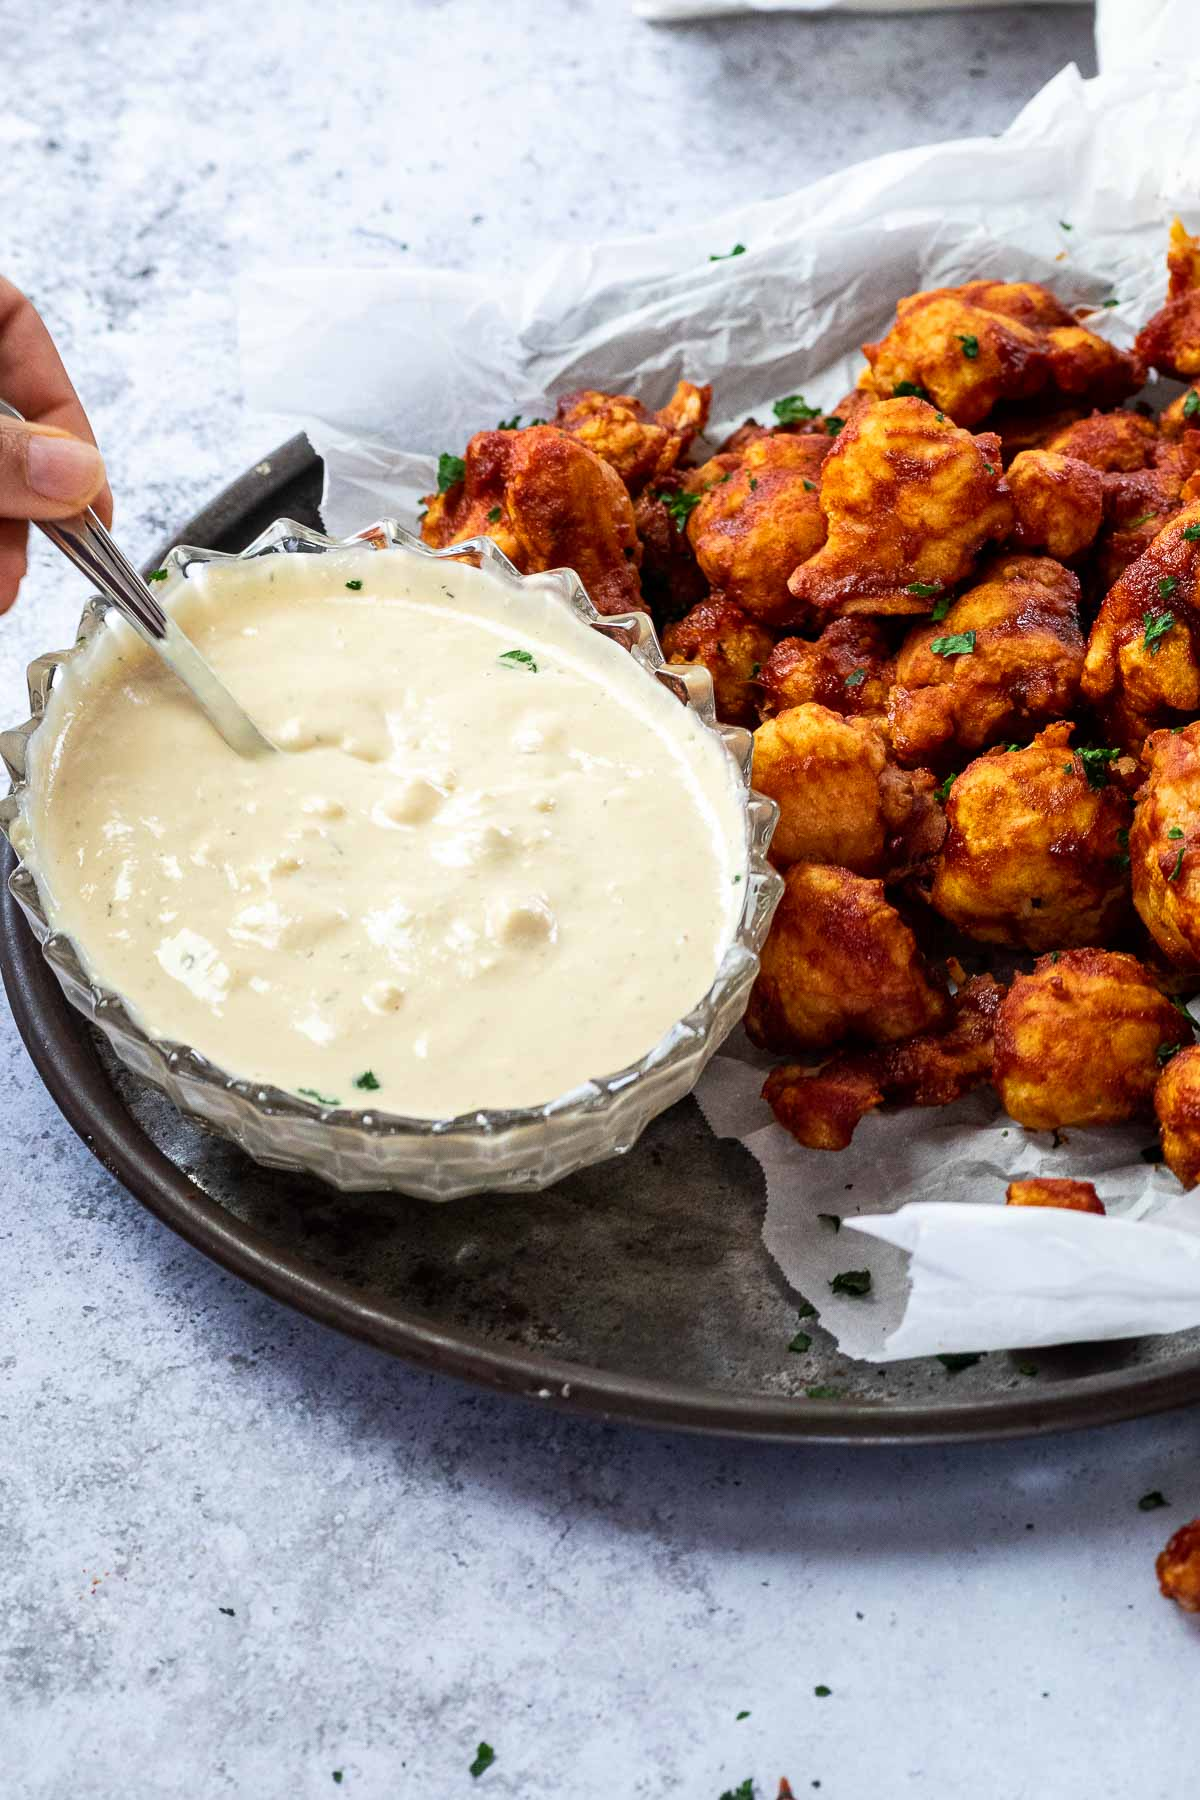 Bowl of vegan blue cheesedressing with a spoon served on a platter with bbq wings